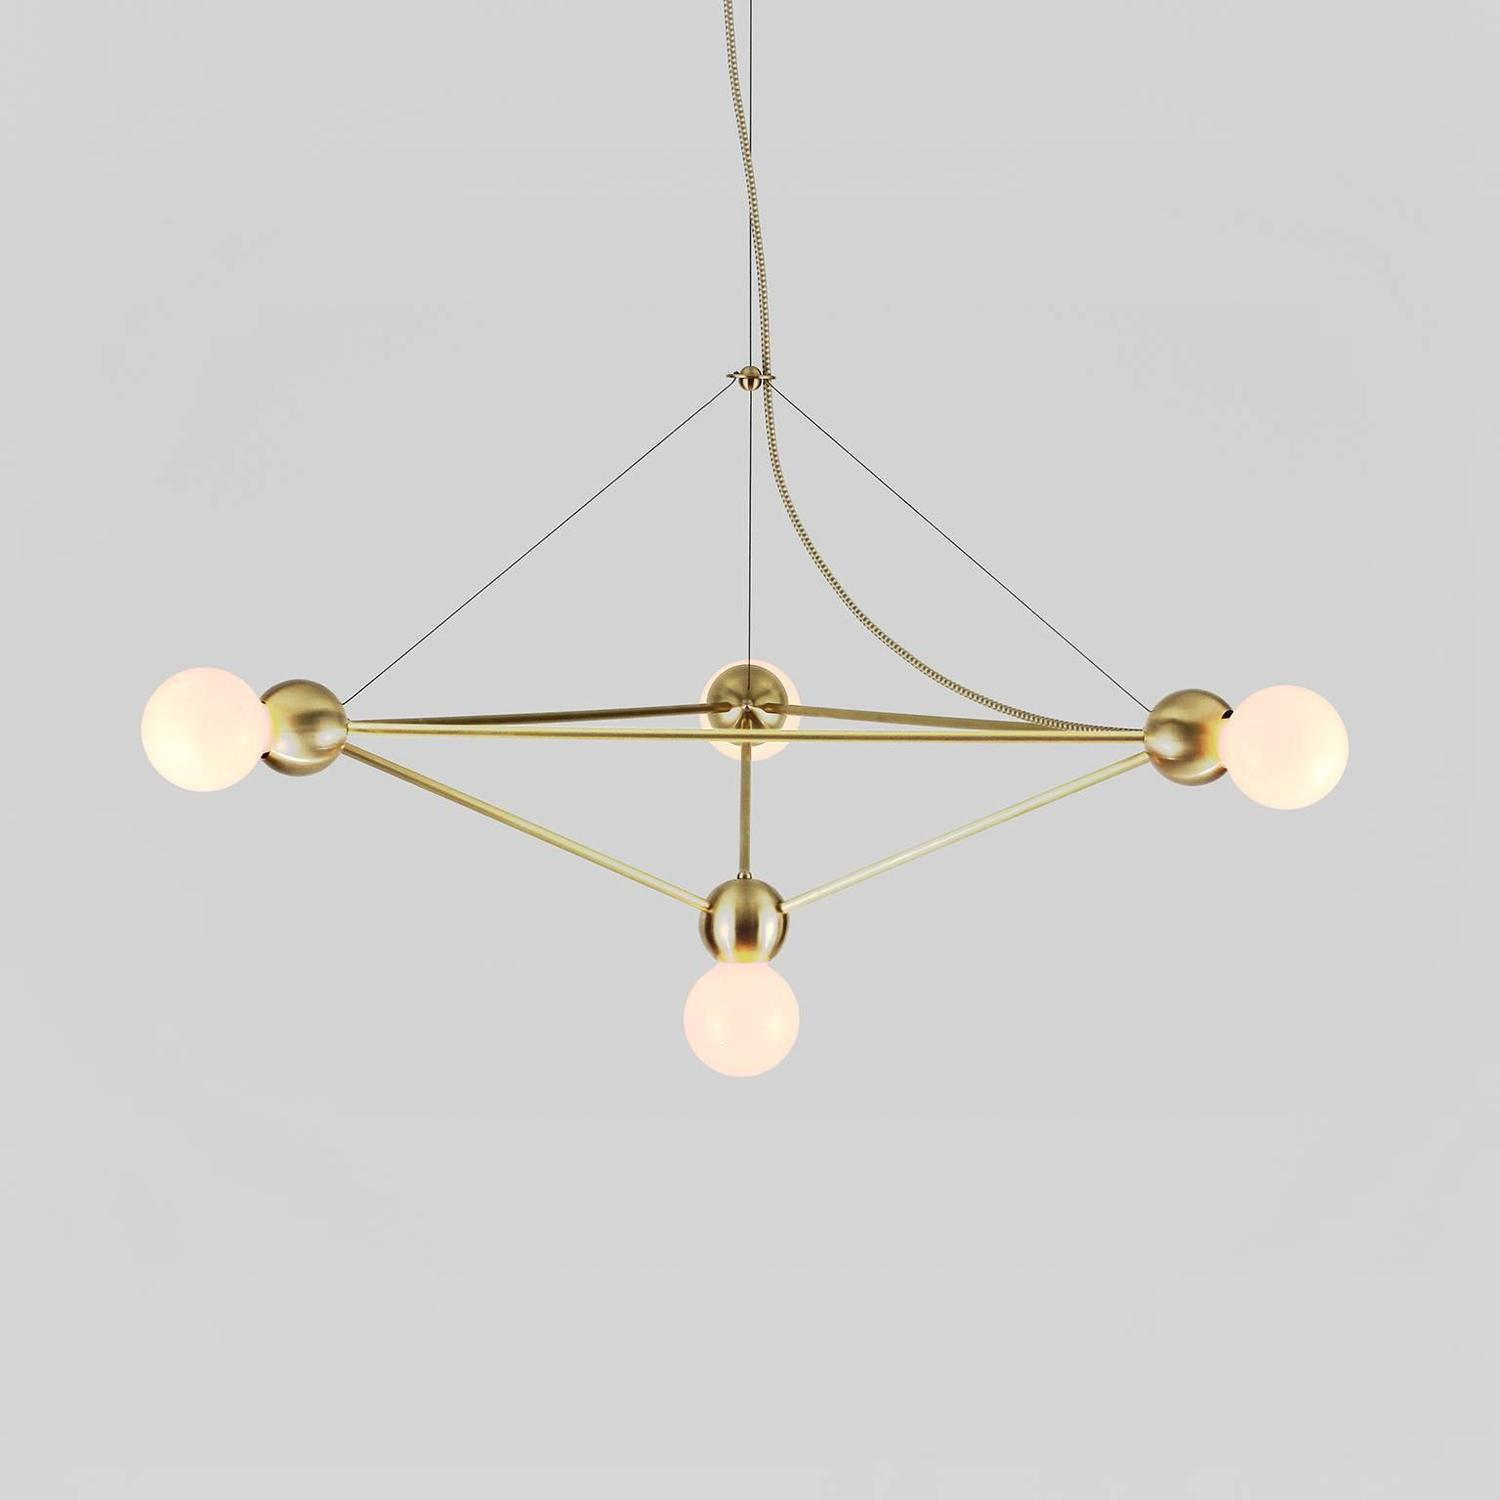 Geometric Brass Chandelier: Lina 04 Light Pyramid LG, Modern Minimal Geometric